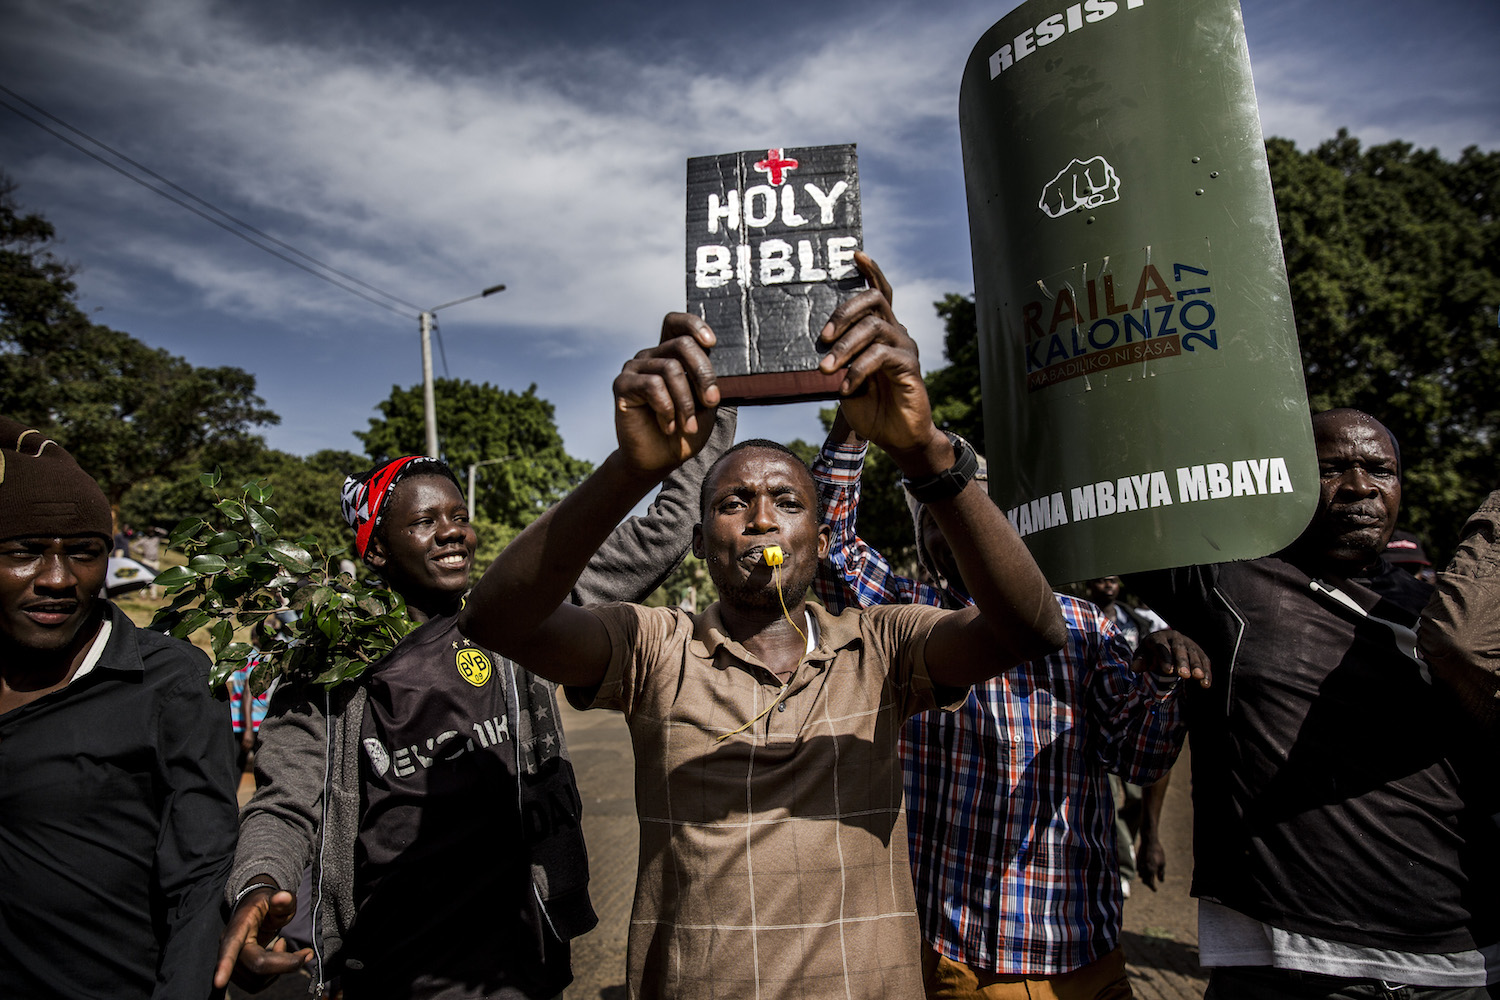 TOPSHOT - A man holds up a bible as supporters of the Kenyan opposition National Super Alliance (NASA) coalition leader react before he has himself sworn in as the 'people's president' on January 30, 2018 in Nairobi. Kenyan opposition leader Raila Odinga had himself sworn in as an alternative president in front of thousands of supporters, three months after an election he claims was stolen from him. / AFP PHOTO / LUIS TATO        (Photo credit should read LUIS TATO/AFP/Getty Images)